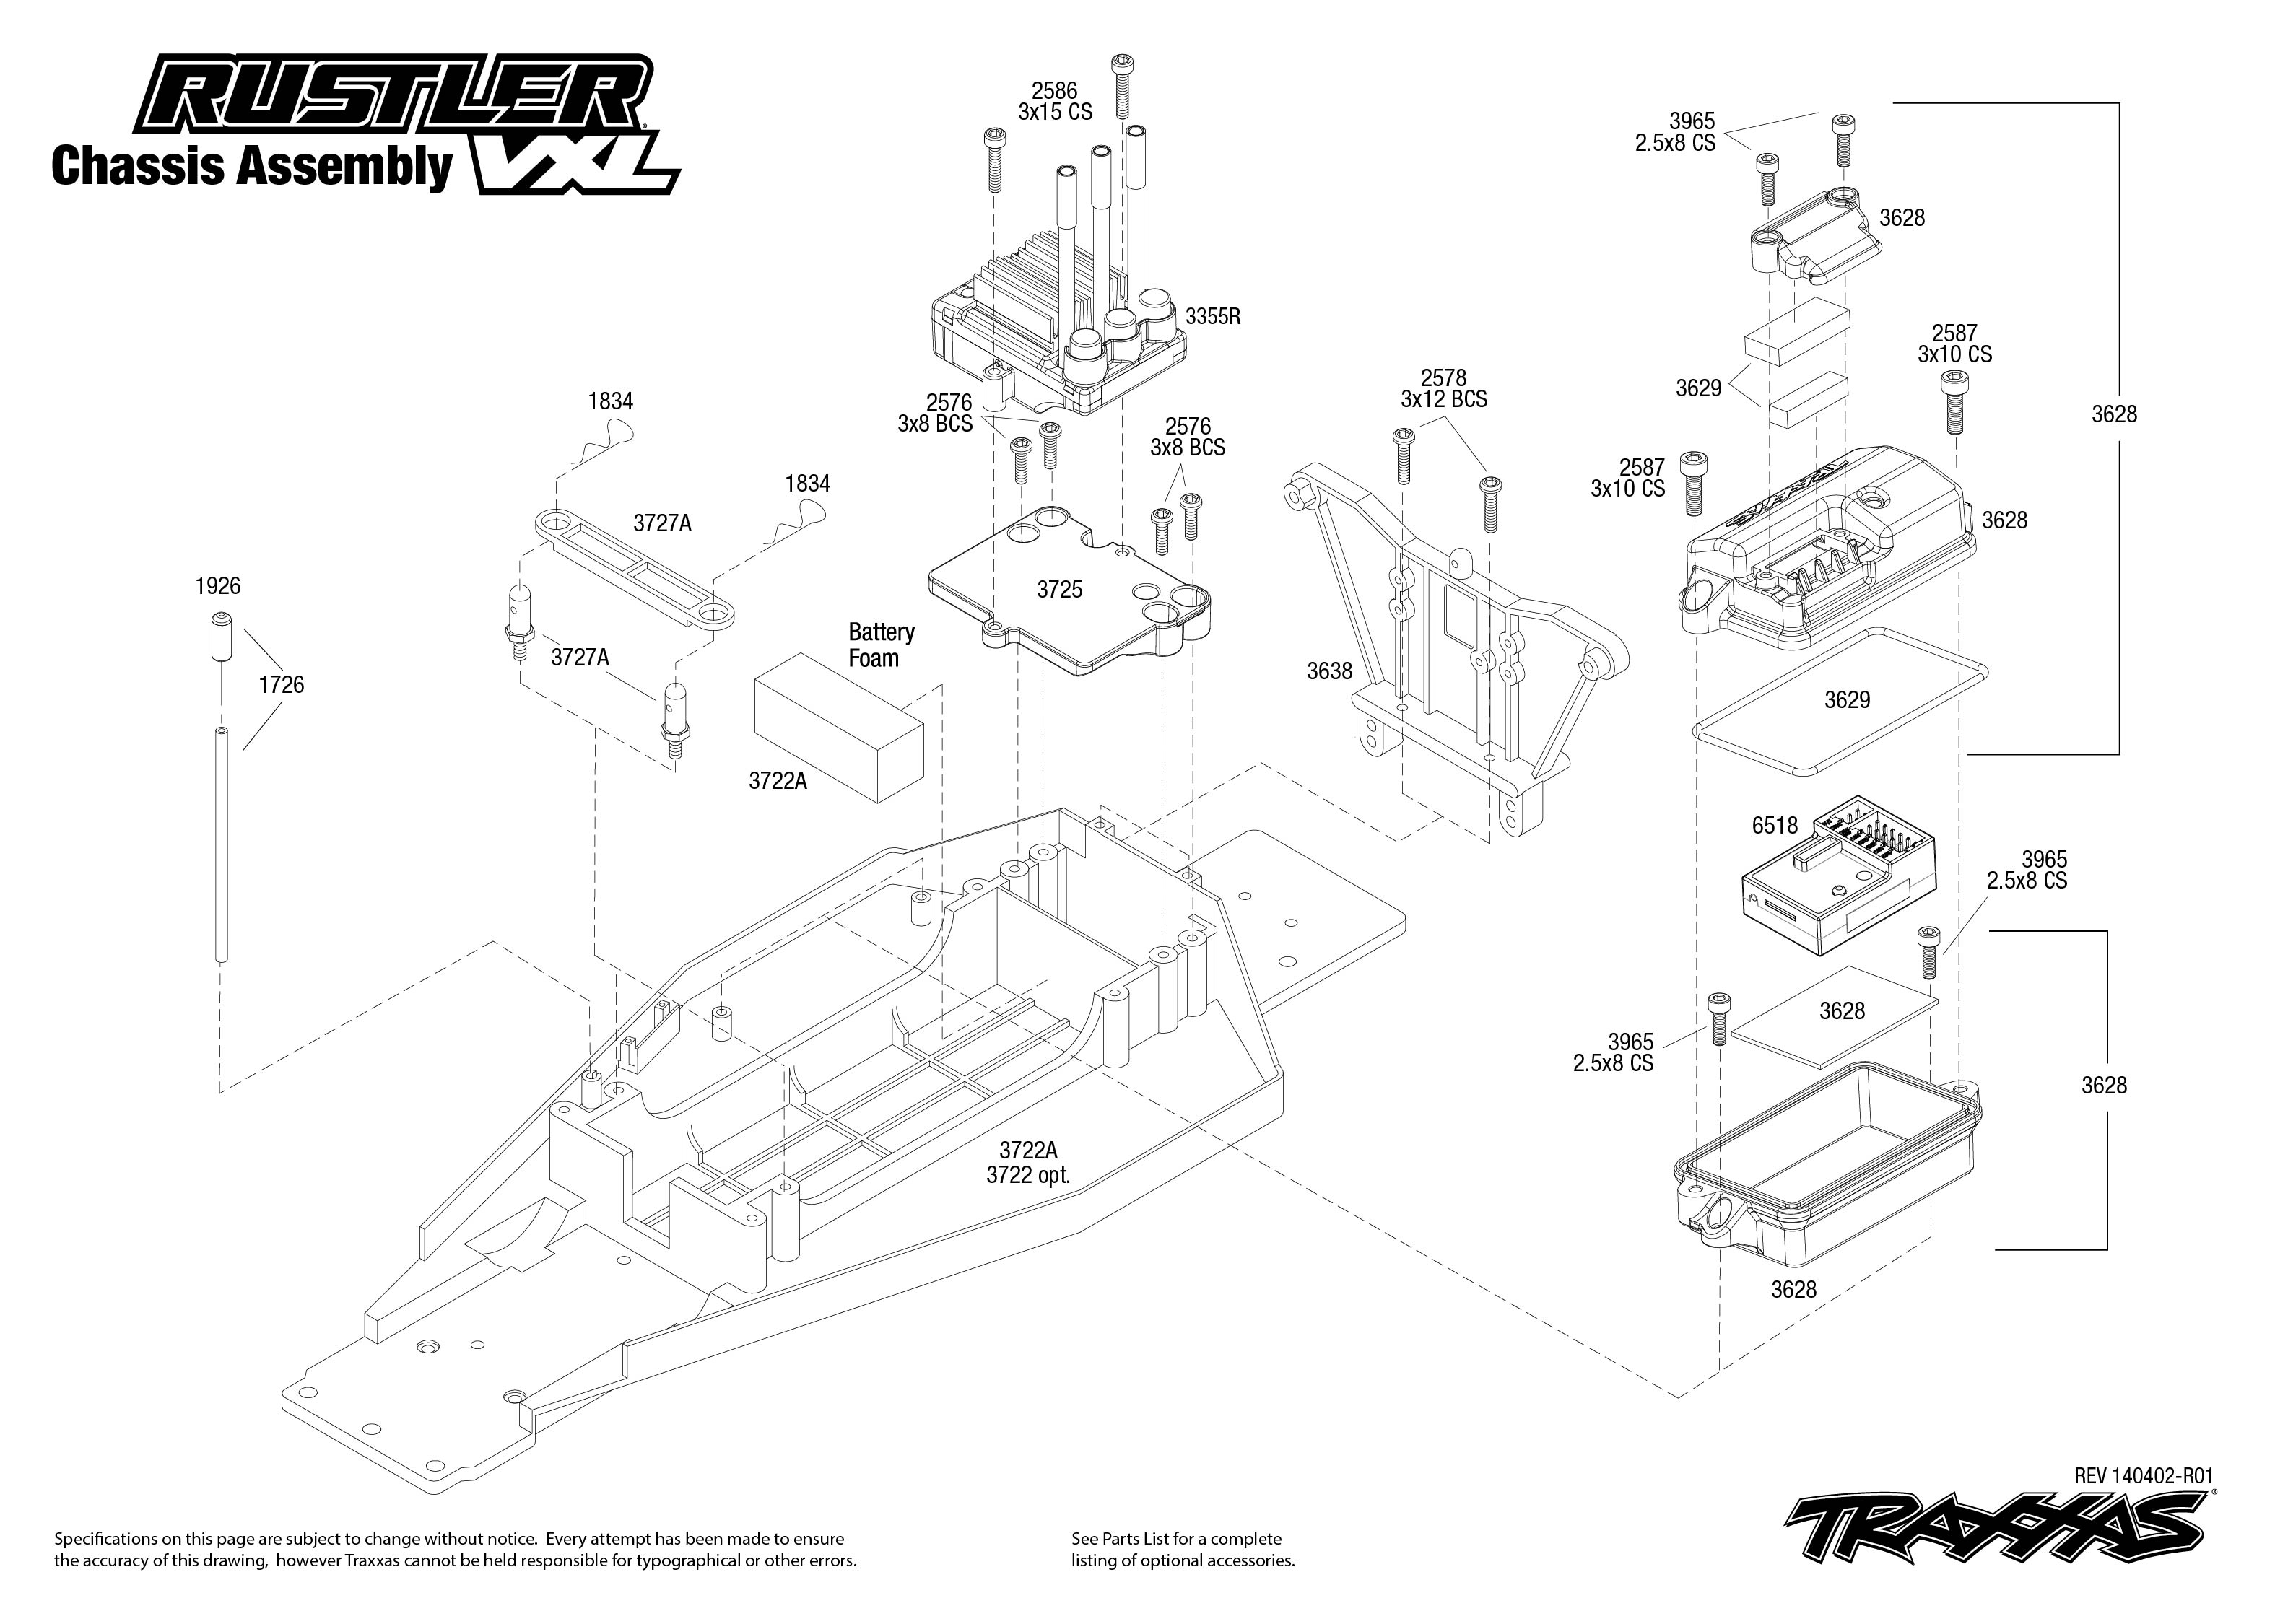 37076_Explodedviews 140402_37076 Chassis Assembly rustler vxl (37076) chassis assembly traxxas RC Wiring Diagrams at alyssarenee.co